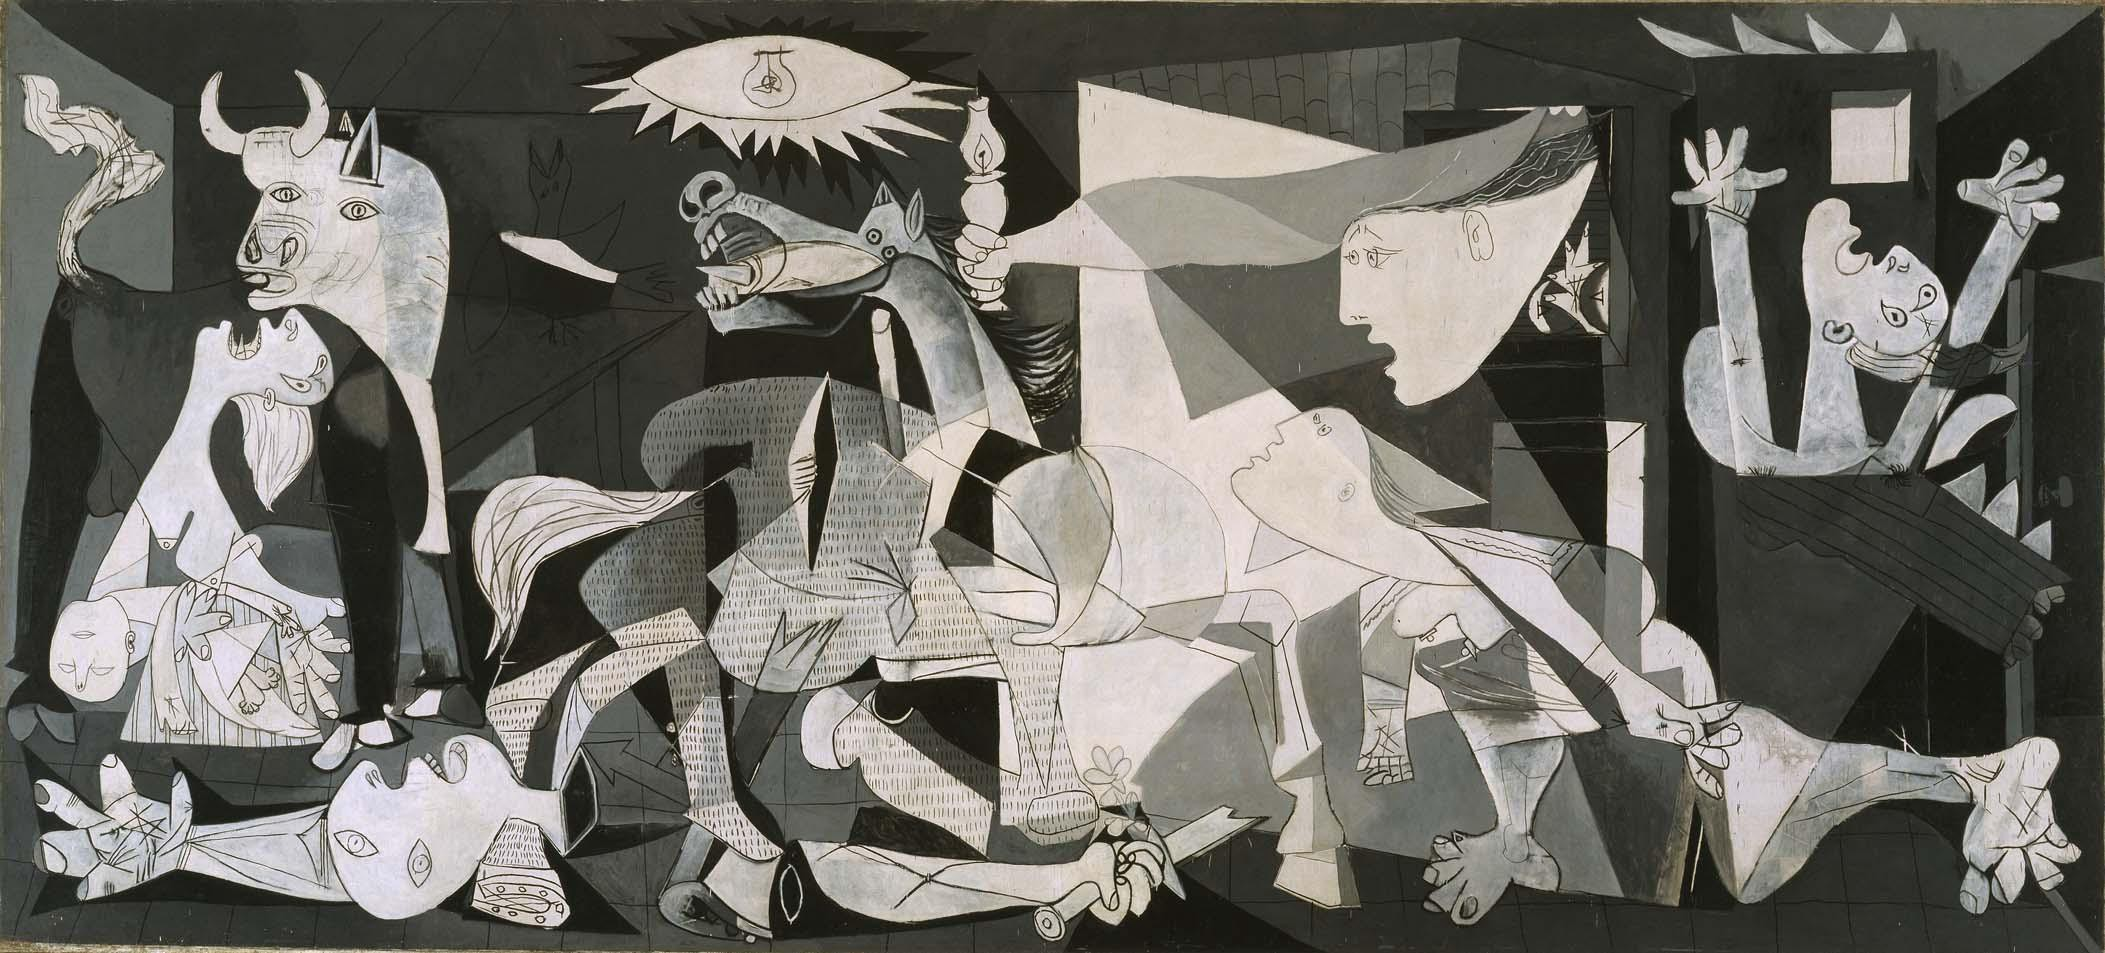 Picasso S Art Of War Pablo Picasso Threw U S Officials Into By Cochisen Hearing Voices Cafe Medium